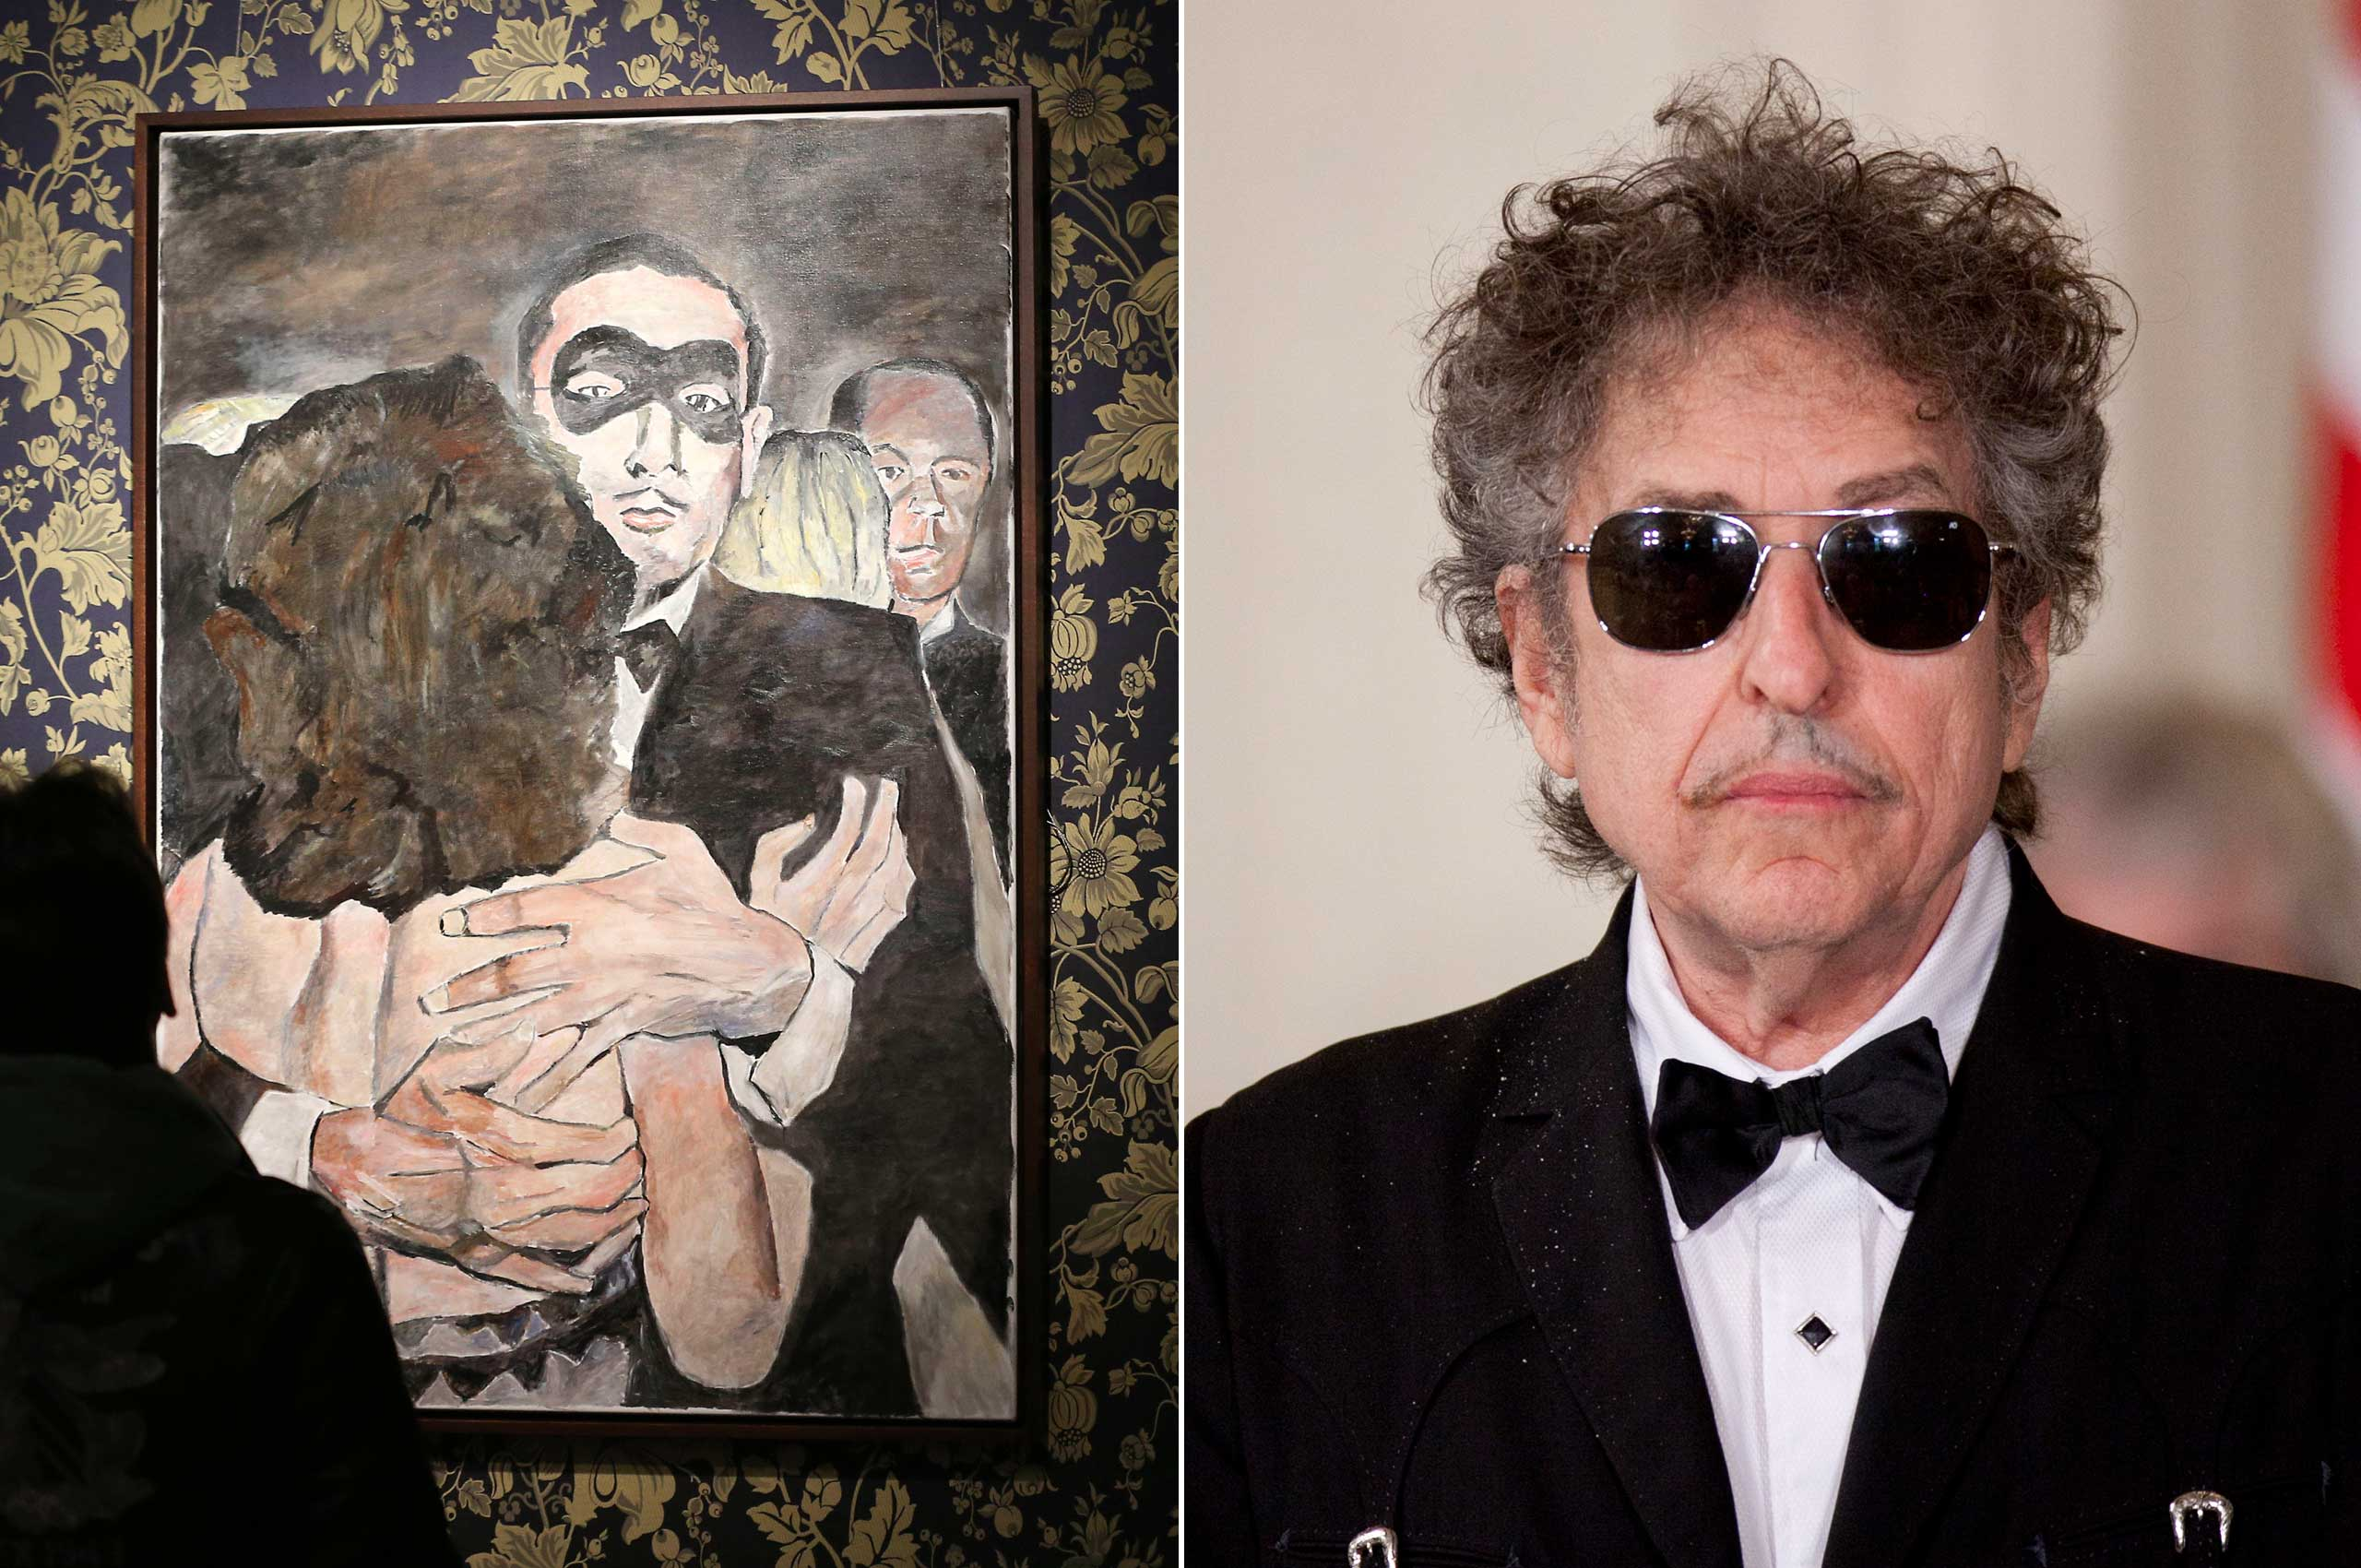 Bob Dylan created  New Orleans Series,  a collection of paintings inspired by the city of New Orleans in the 1940s and '50s.